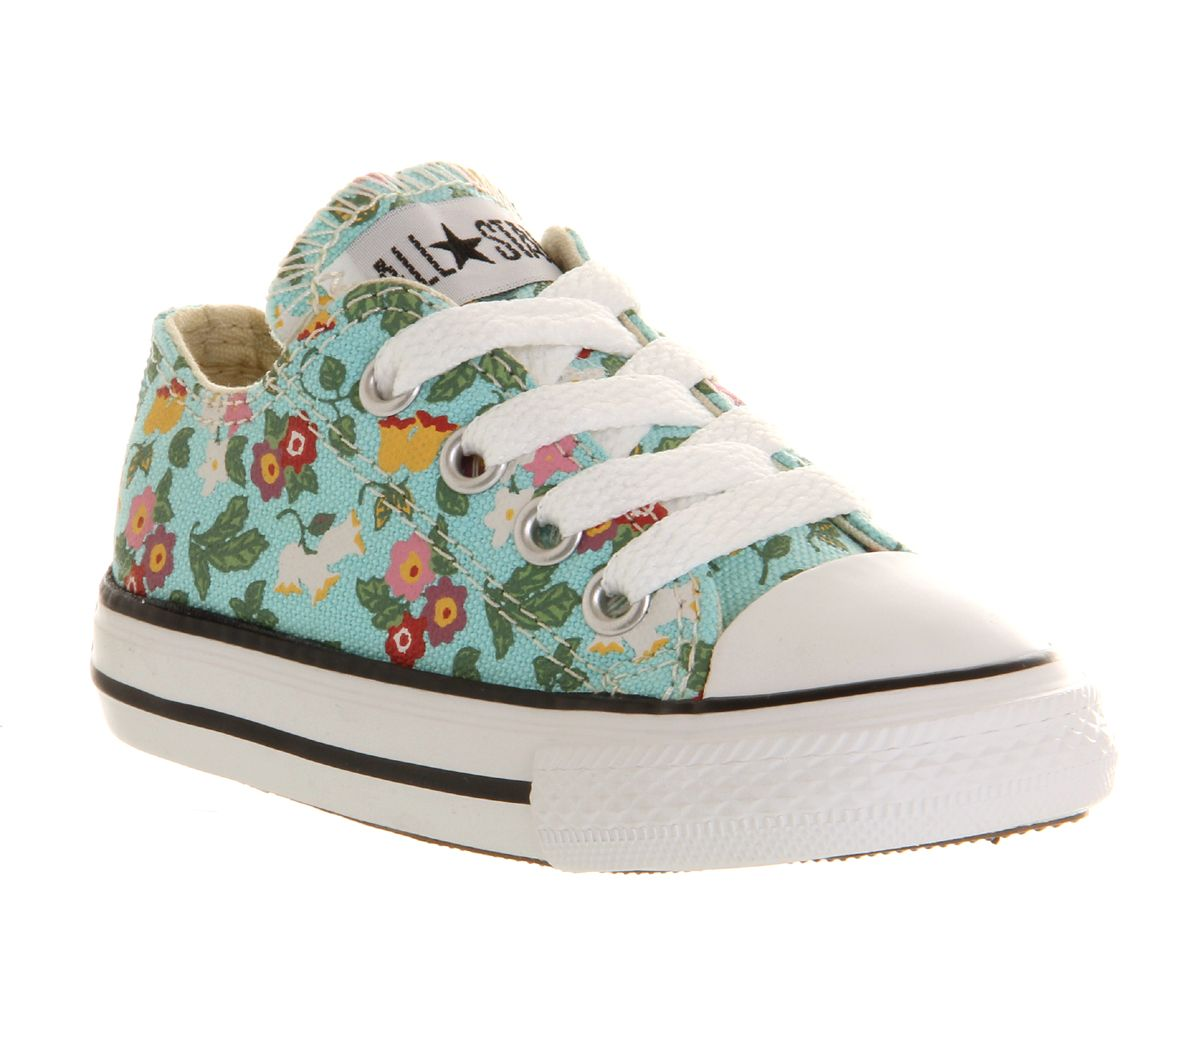 65b1374b6a1e Converse Allstar Low Infant Ditsy Floral Exclusive - Unisex ...